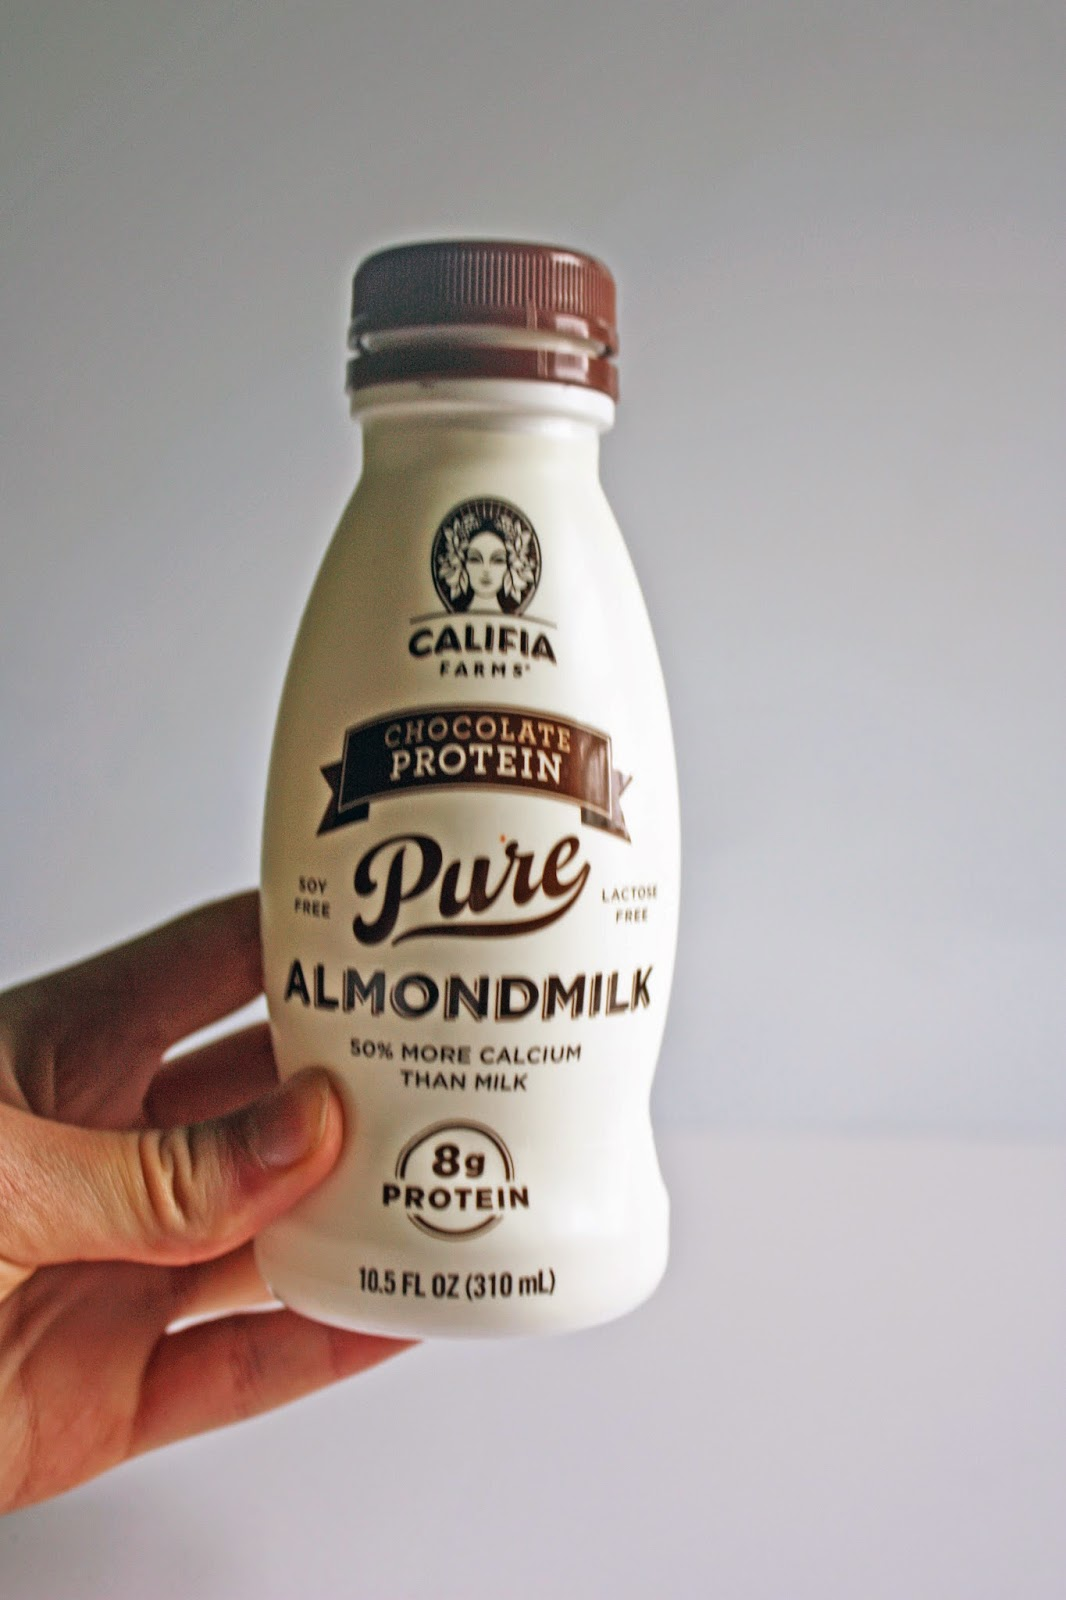 Califia farms chocolate protein almond milk is not vegan but why